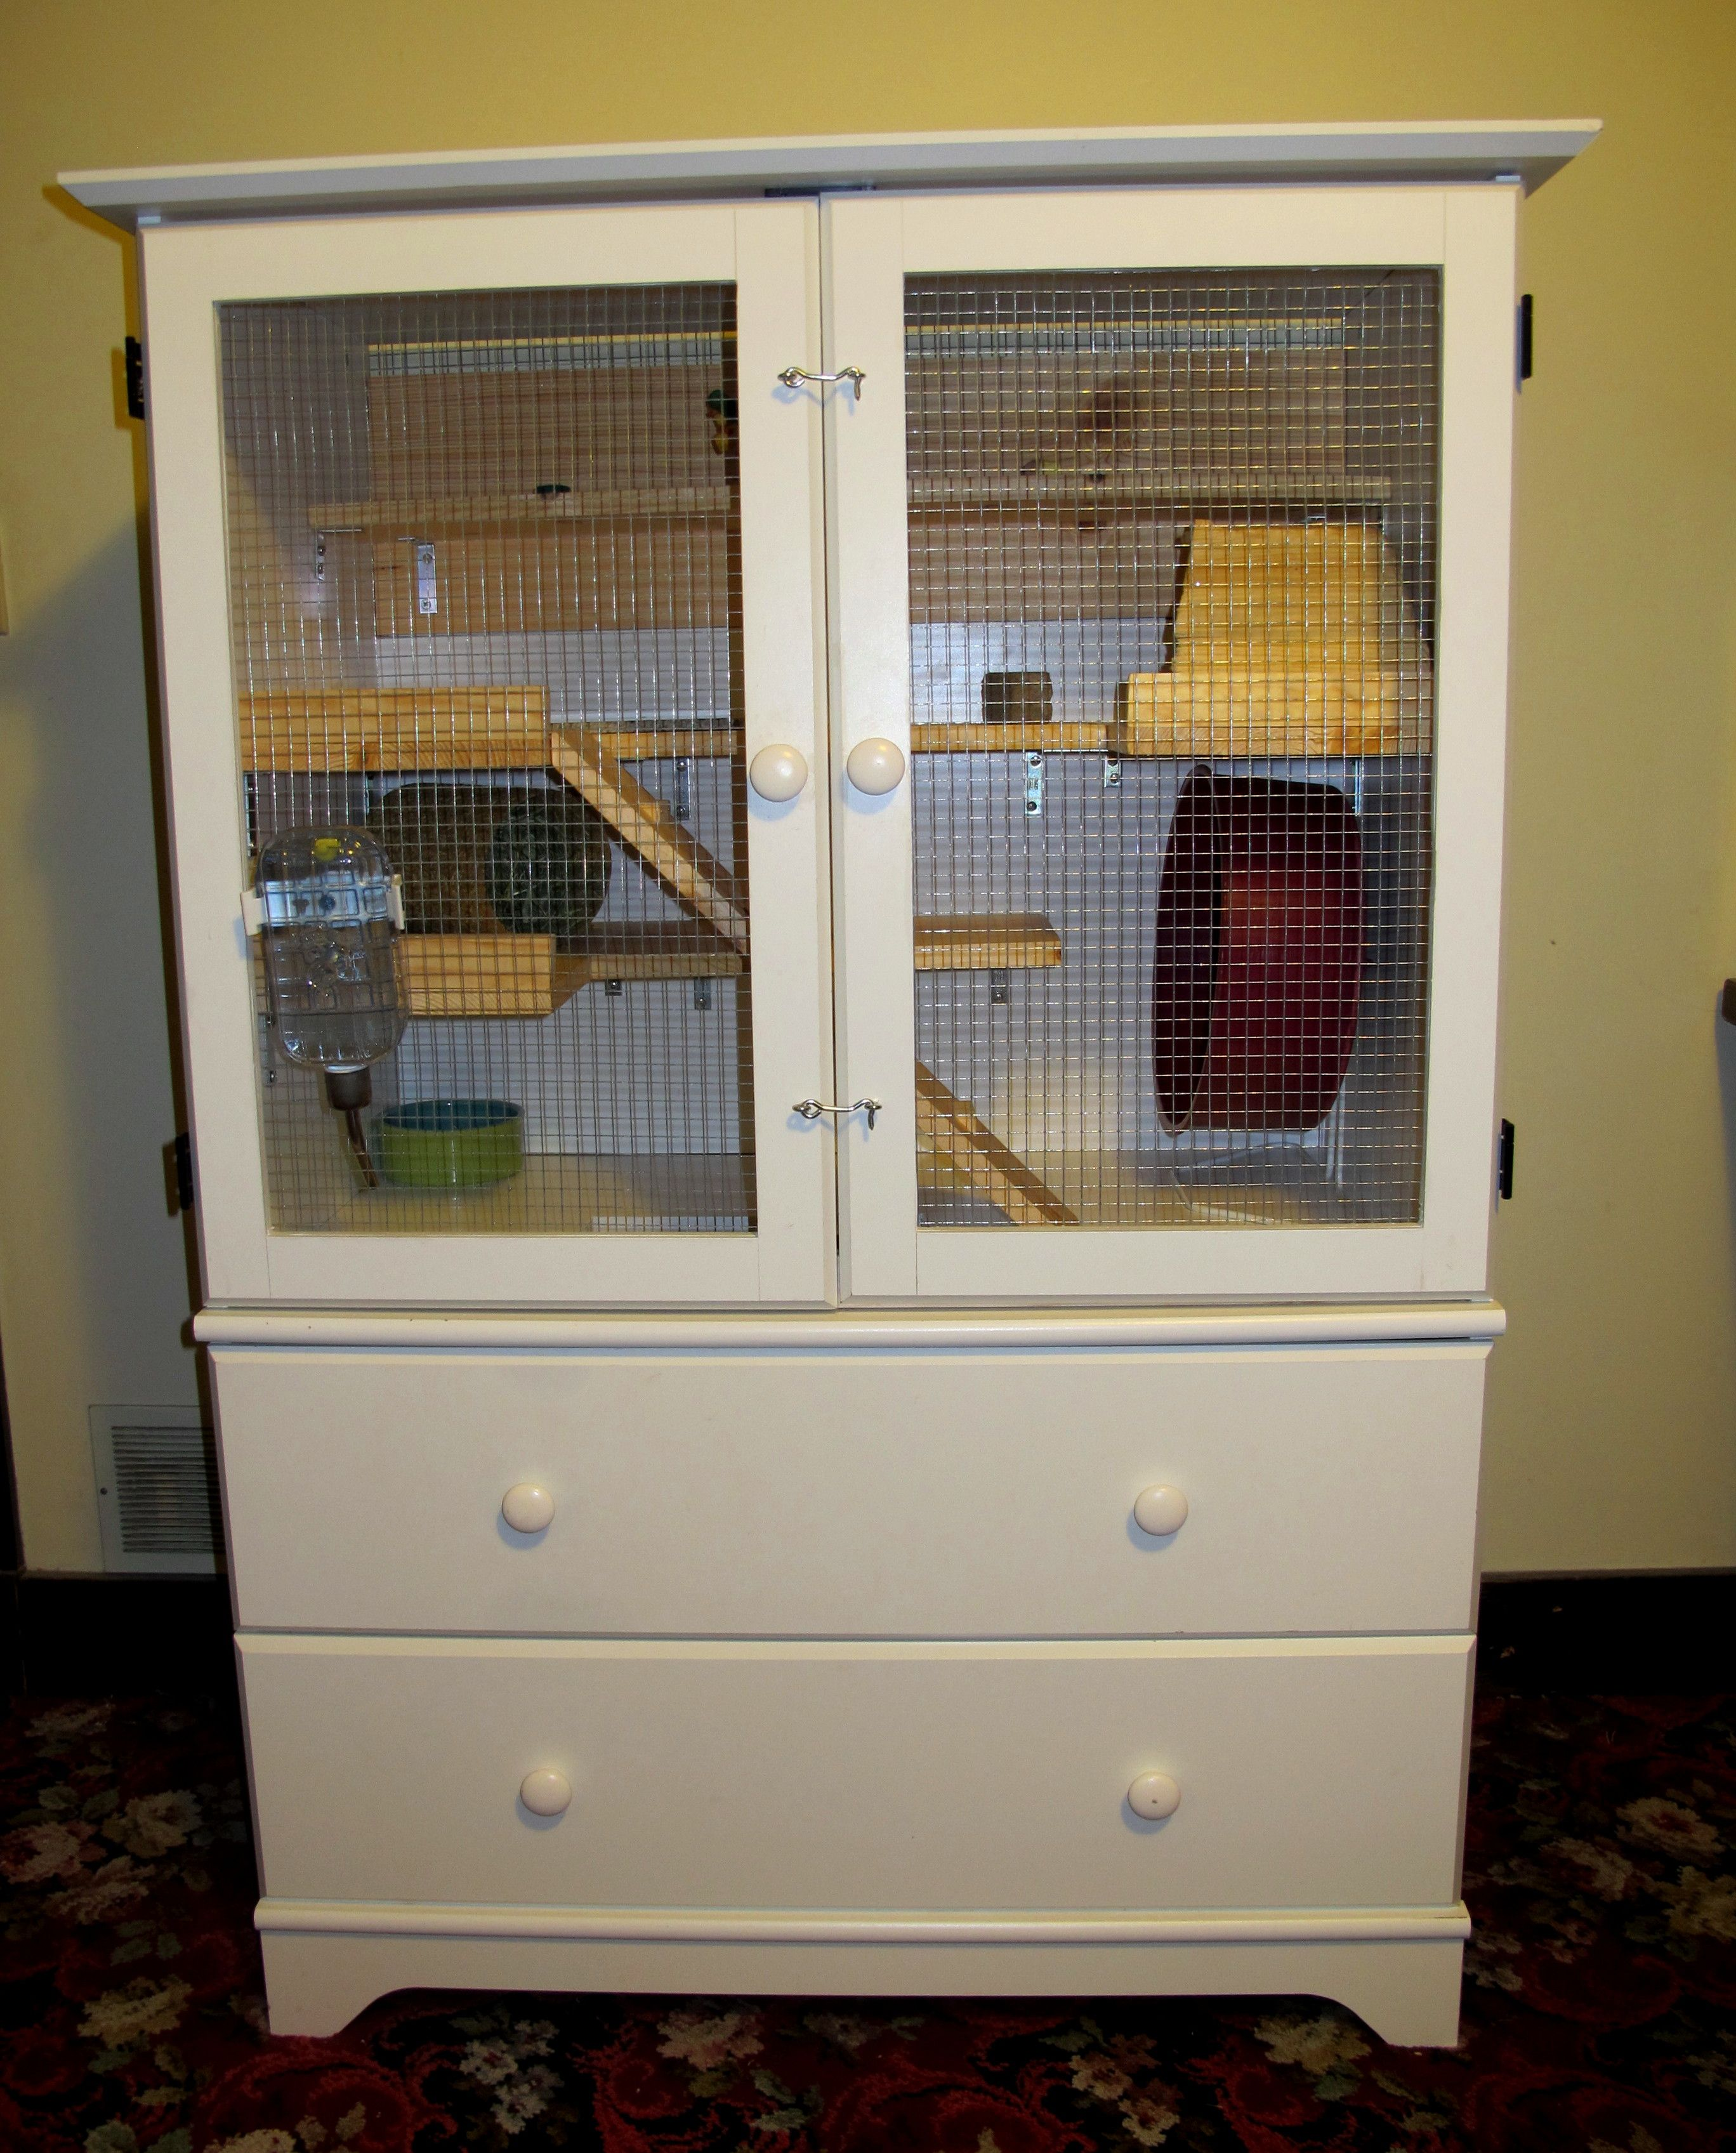 Diy Chinchilla Pet Cage Outside View Of A Chinchilla Cage We Fashioned From A Secondhand